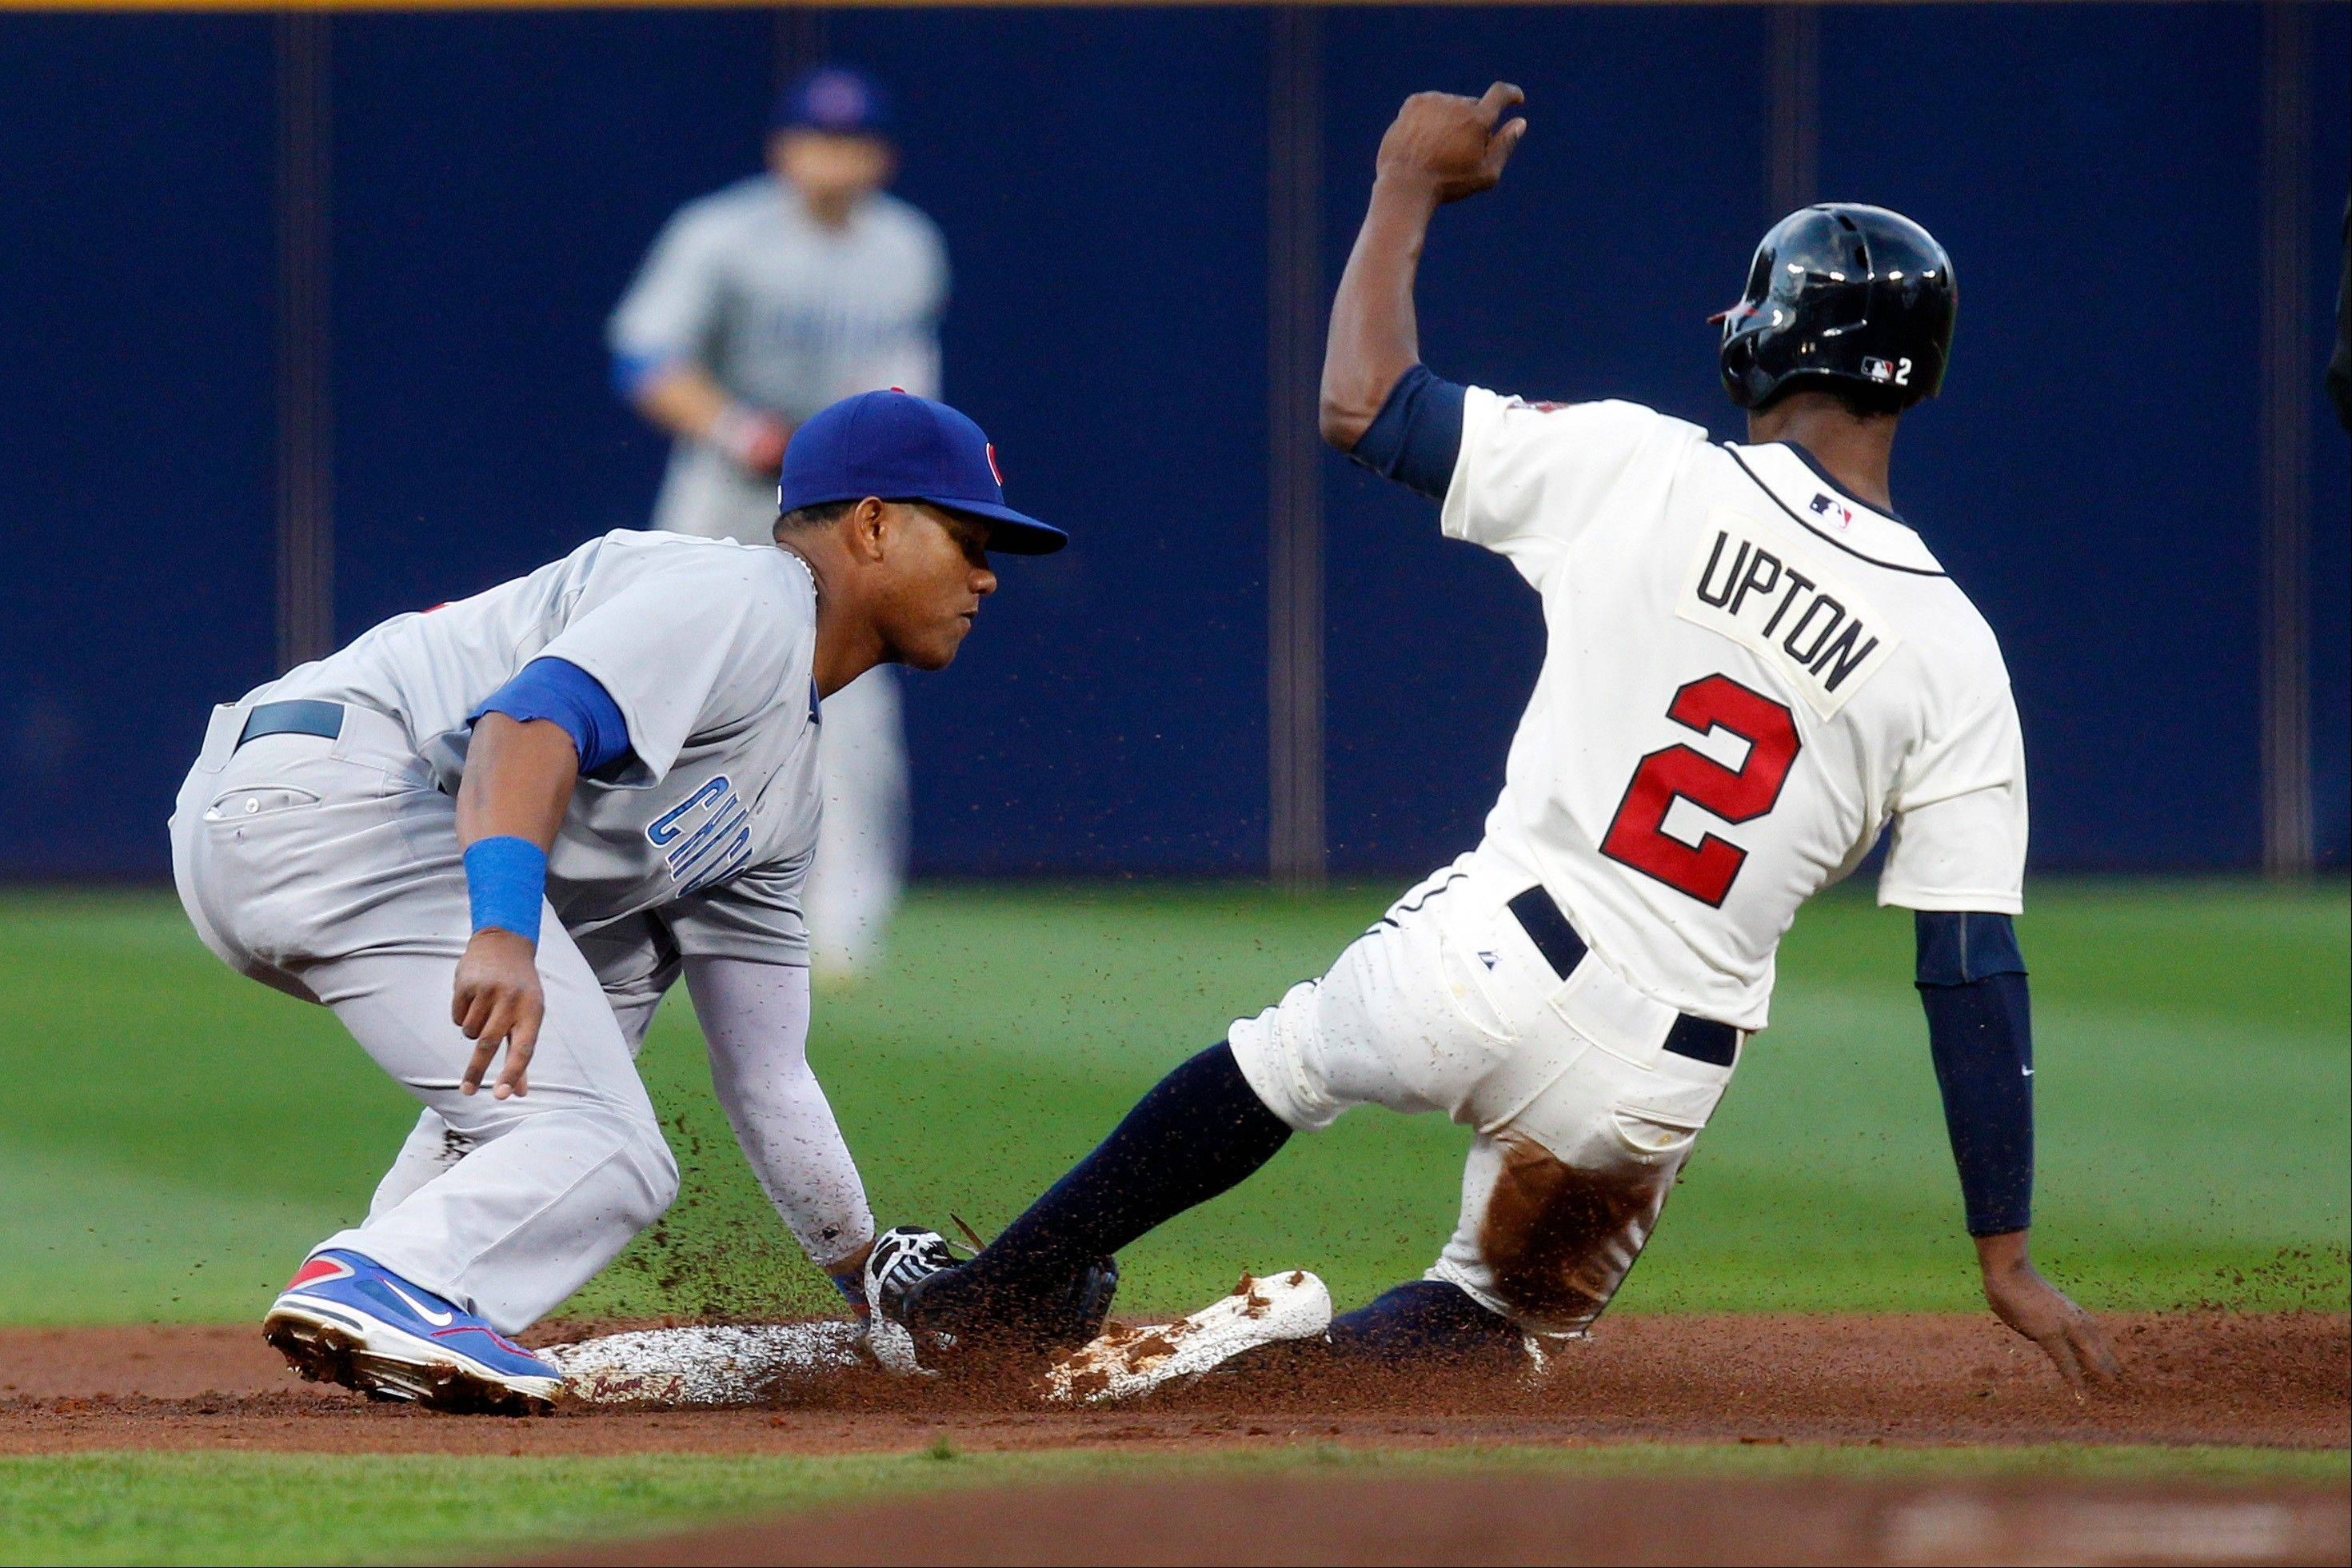 Chicago Cubs short stop Starlin Castro, left, tags Atlanta Braves' B.J. Upton out as he slides into second during Saturday night in Atlanta. The Braves beat the cubs 6-5.